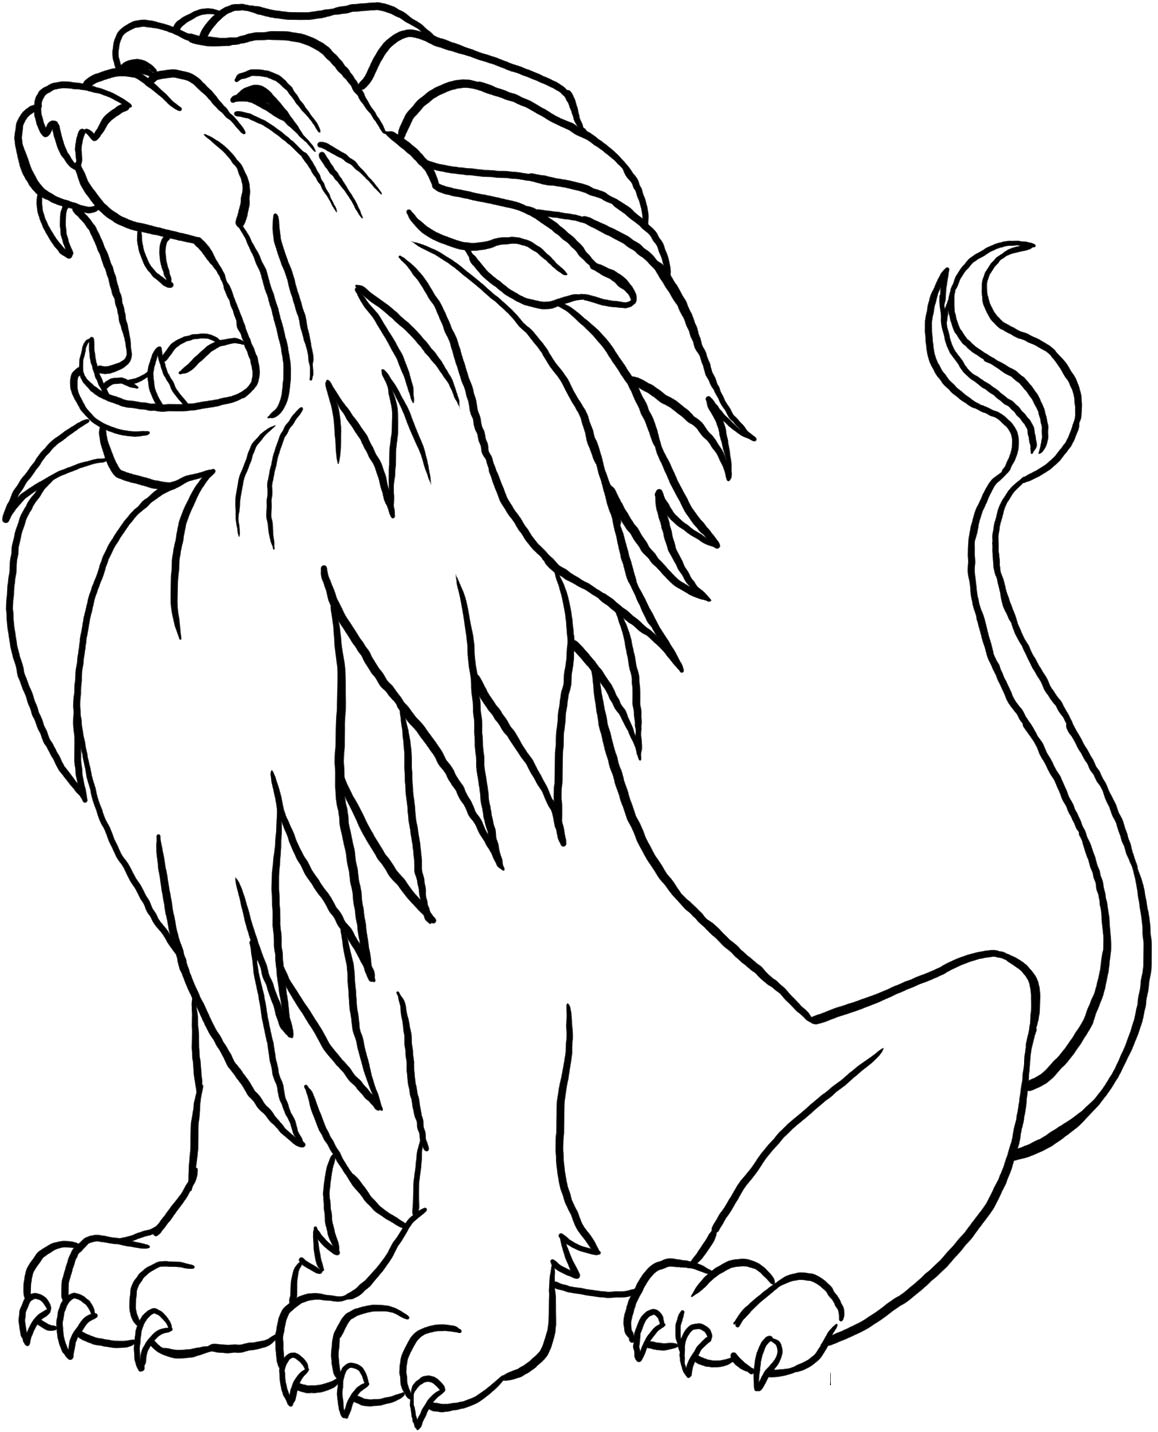 Lion Drawing Color at GetDrawings.com | Free for personal use Lion ...